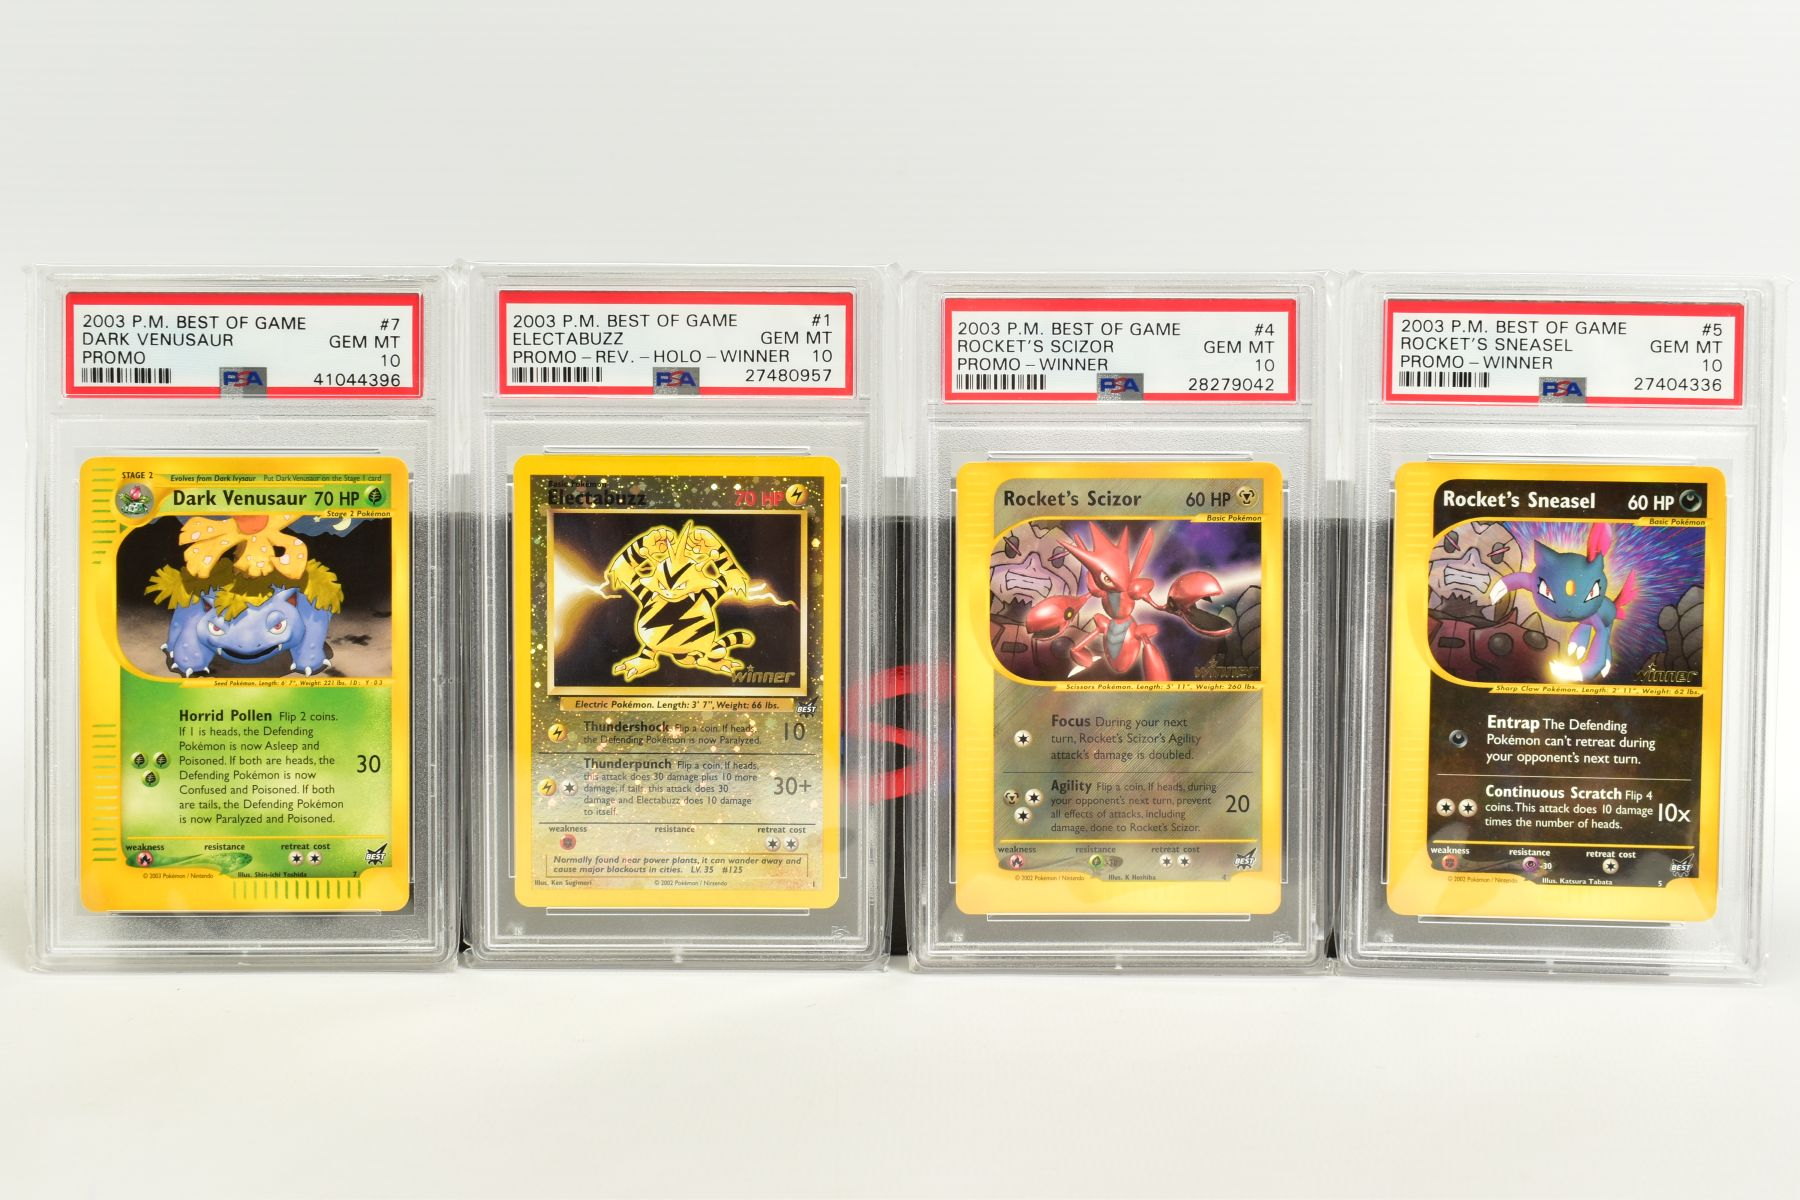 A QUANTITY OF PSA GRADED POKEMON BEST OF GAME CARDS, all are graded GEM MINT 10 and are sealed in - Image 3 of 4